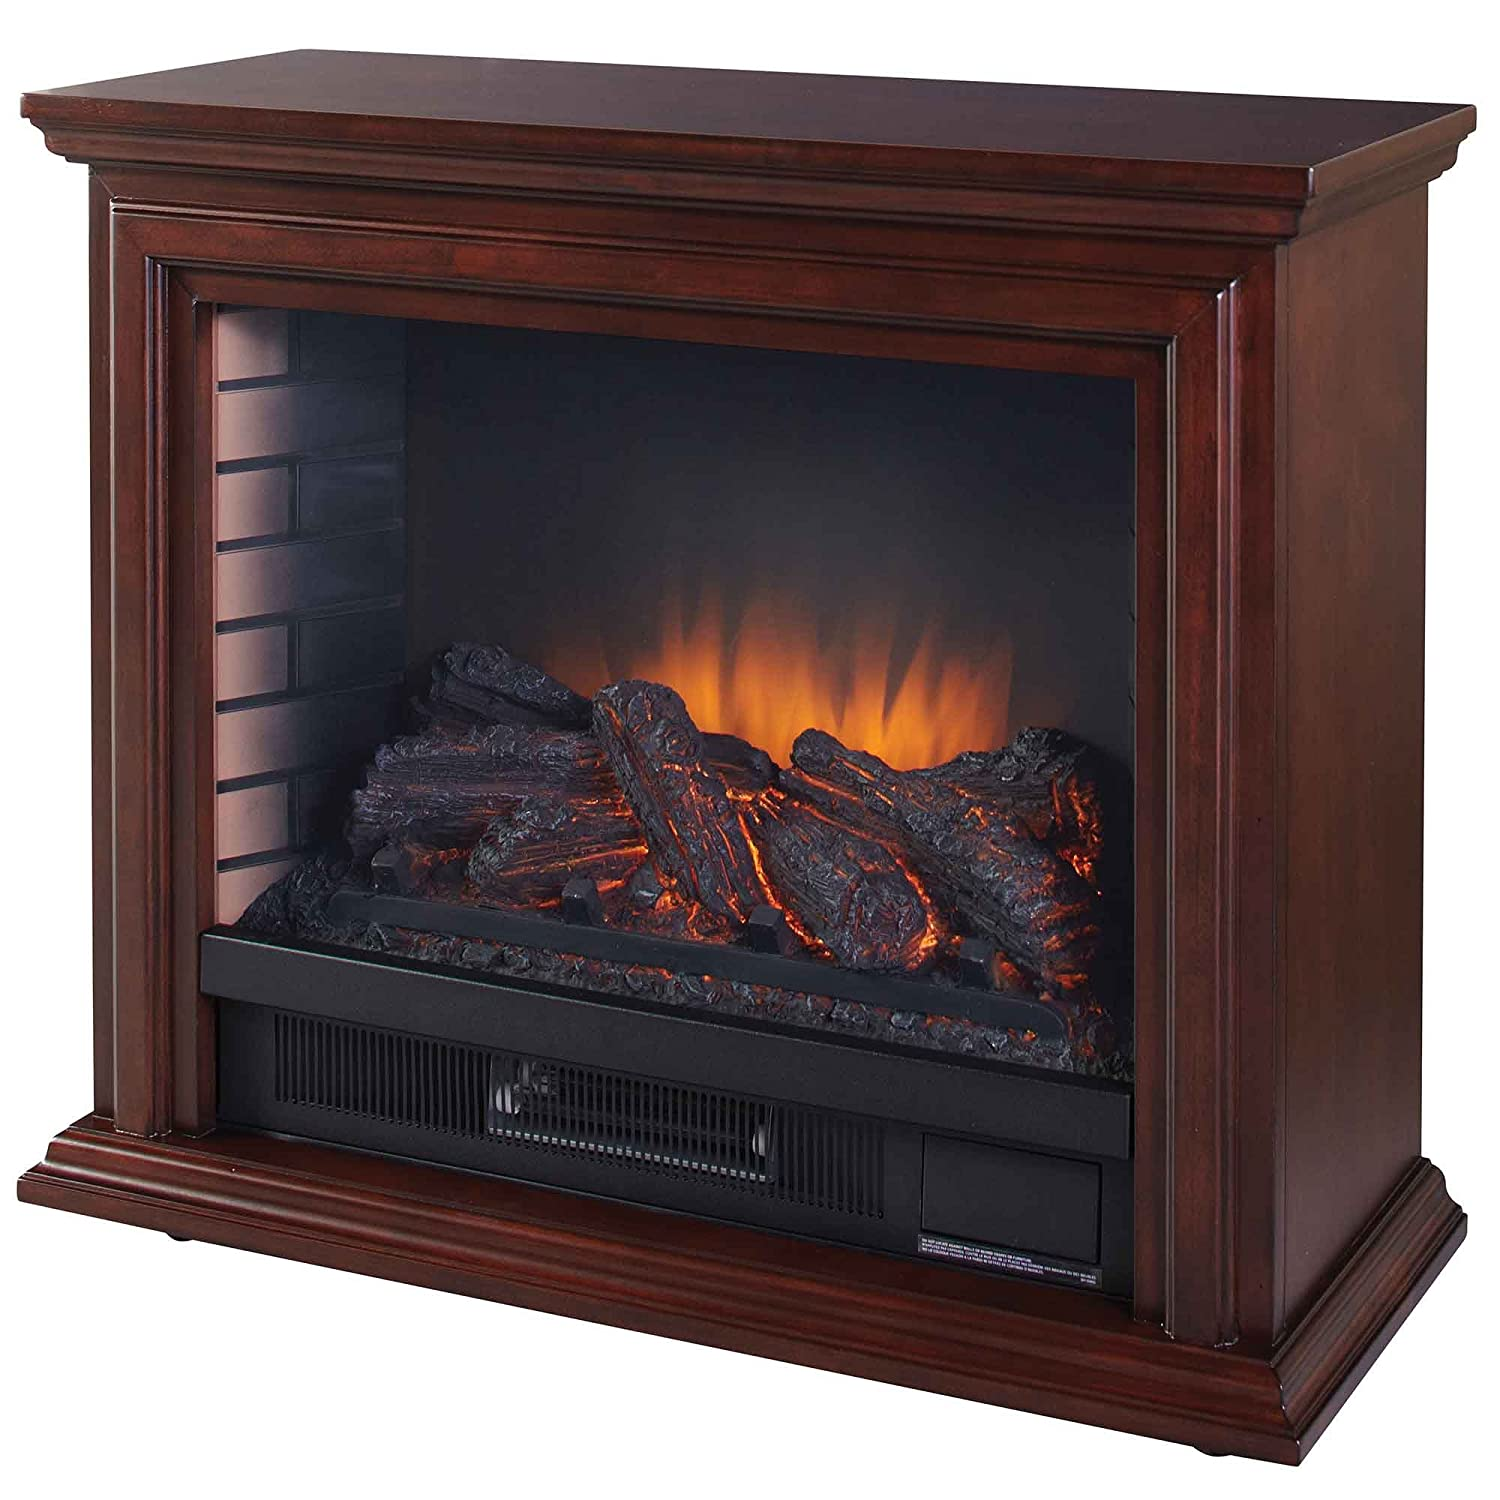 Amazon.com: Pleasant Hearth GLF-5002-68 Sheridan Mobile Fireplace: Home & Kitchen